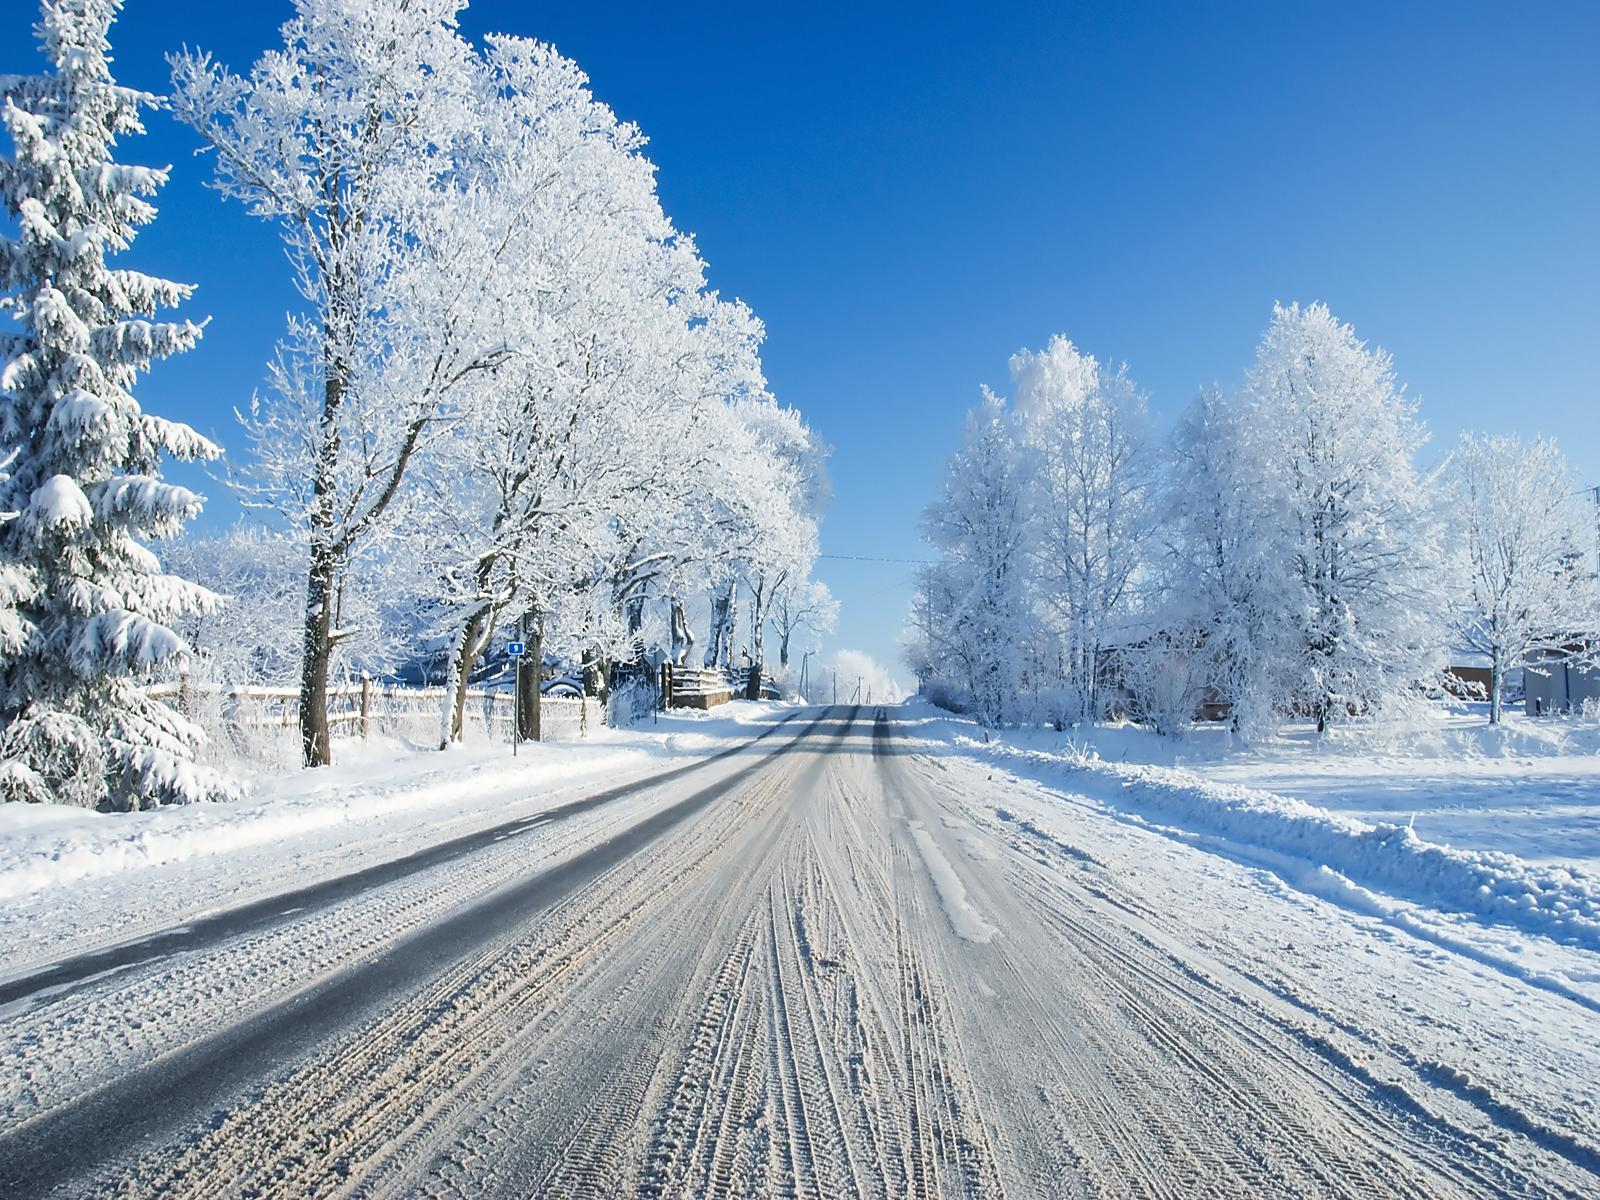 Beautiful Winter Snow 6 36202 Image HD Wallpapers